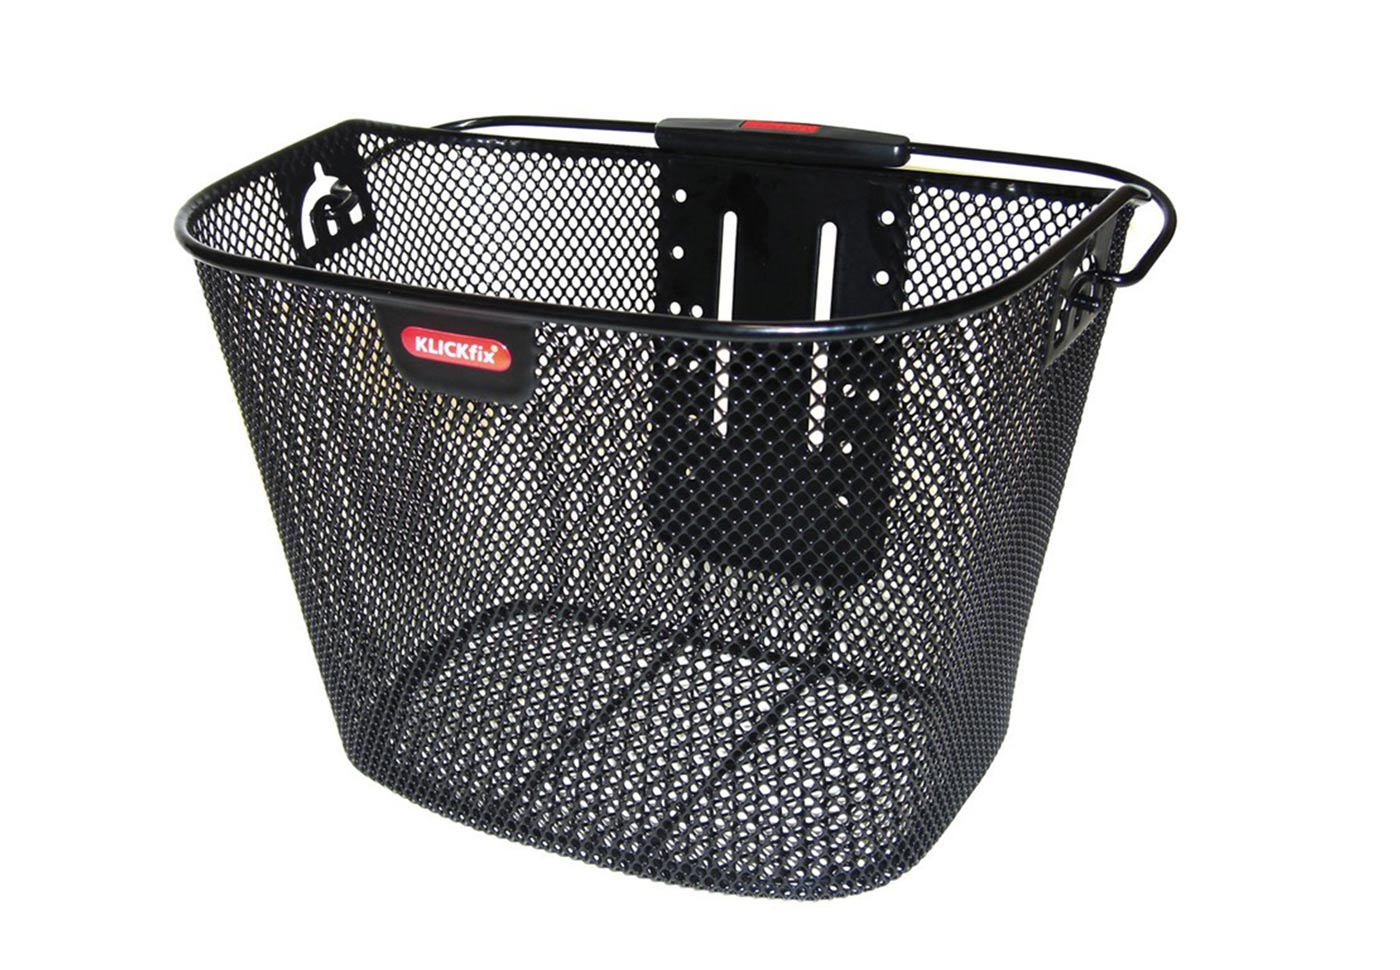 Baskets & luggage rack